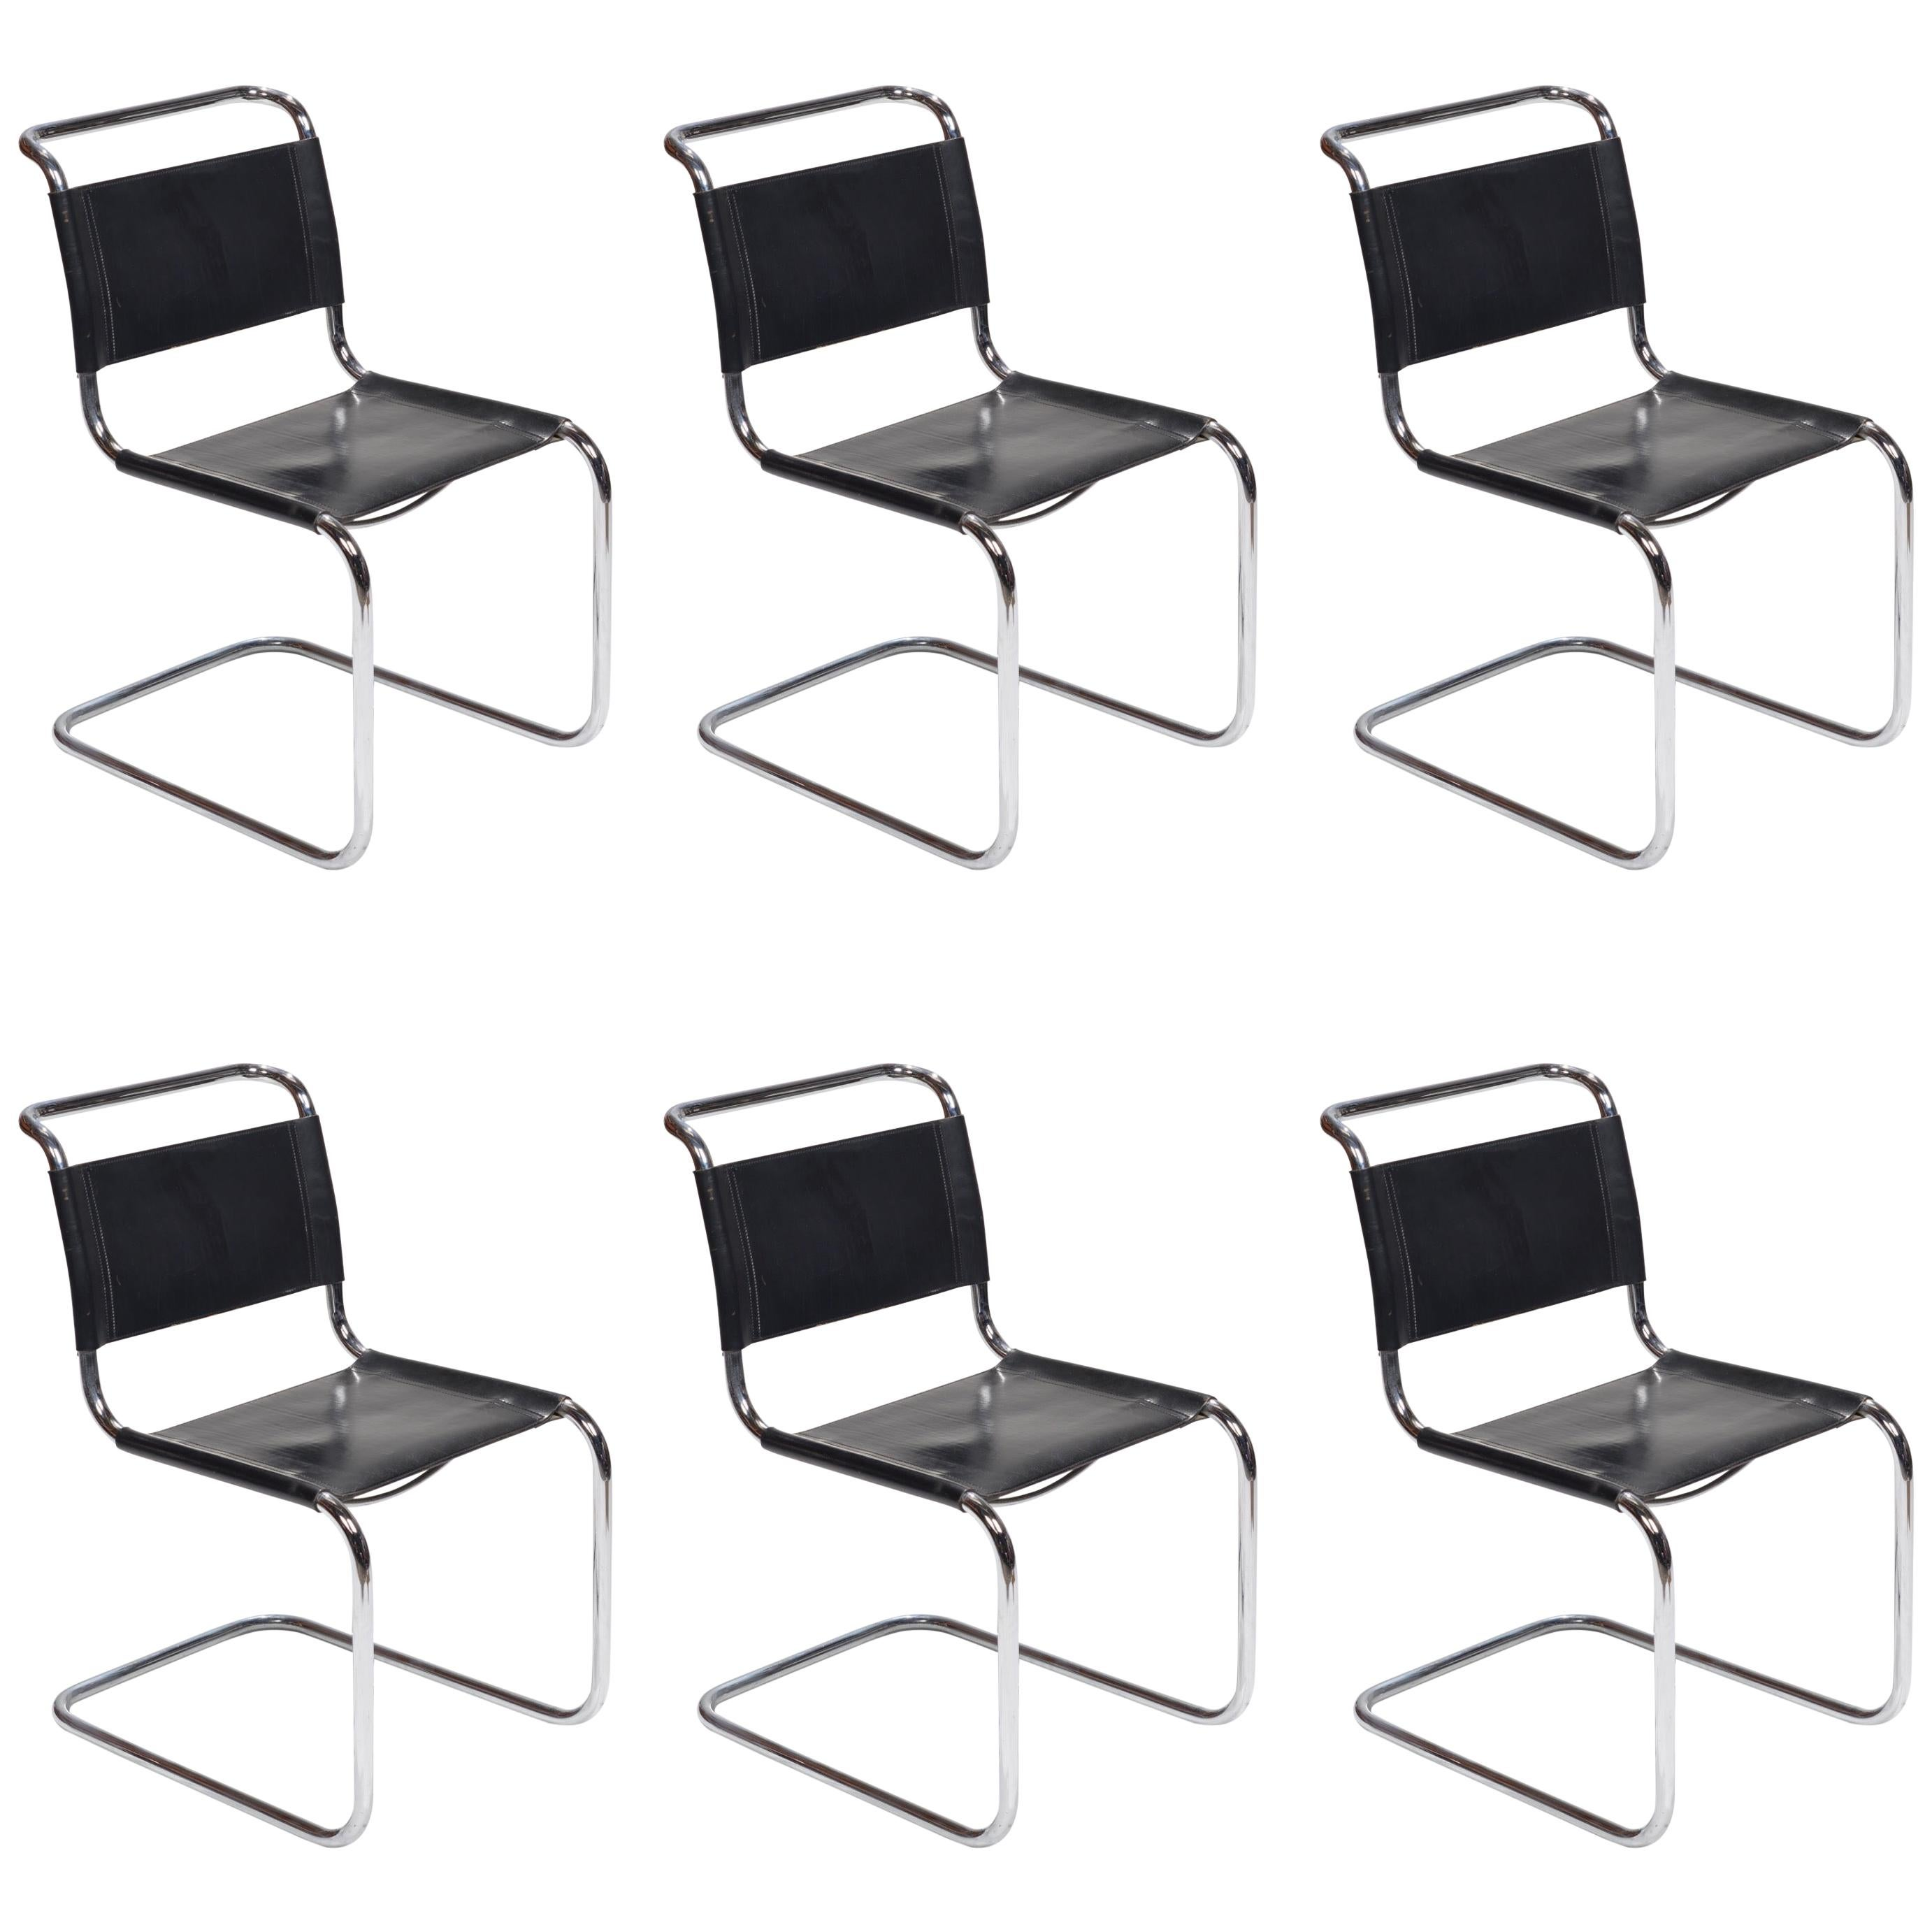 Model S33 Cantilever Chairs by Mart Stam for Fasem